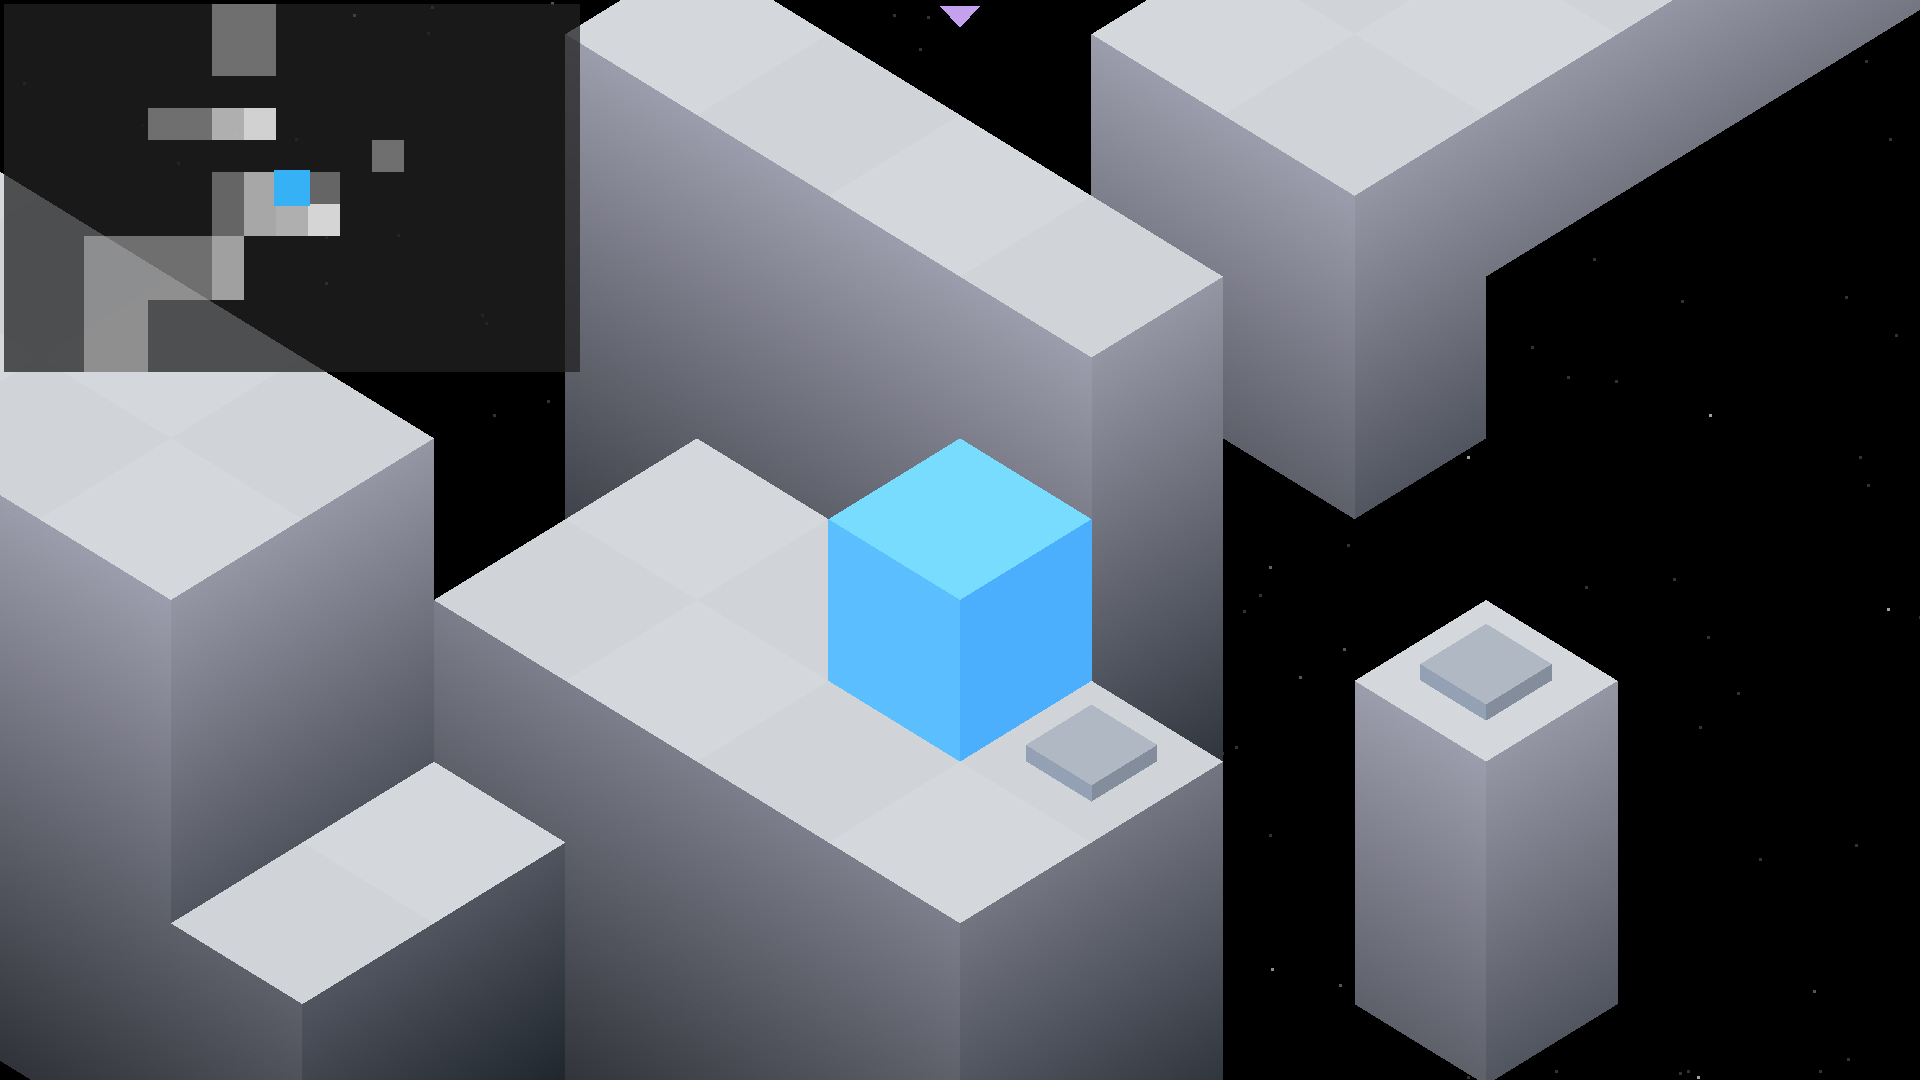 LR5e8hoSXcoxHHrdNVYBWd - The best Android games